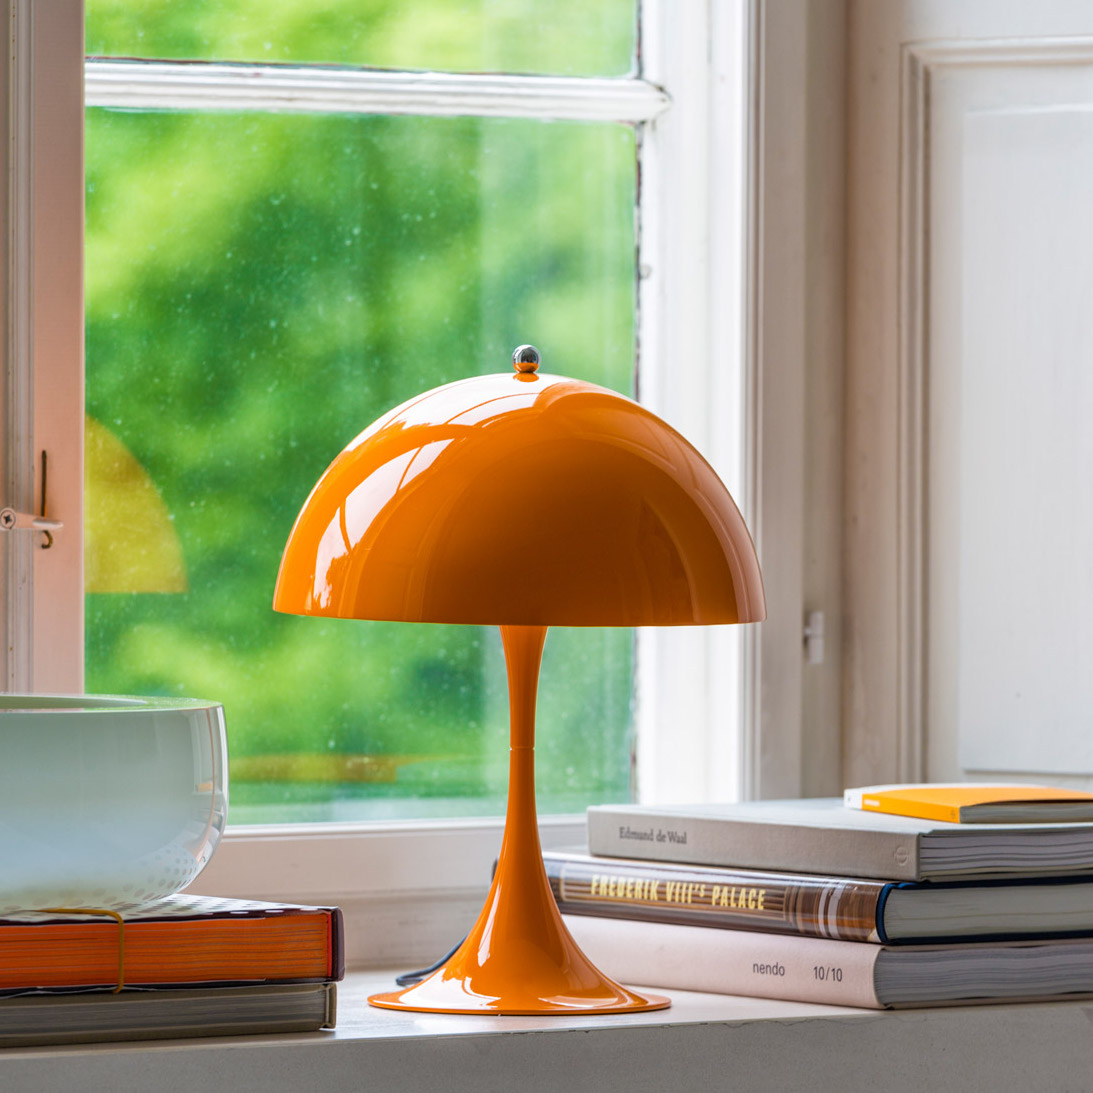 Design Küchenlampe Table Lamp, Panthella Mini, Orange, Led, Ø25cm, H33,5cm - Louis Poulsen - Nedgis Lighting